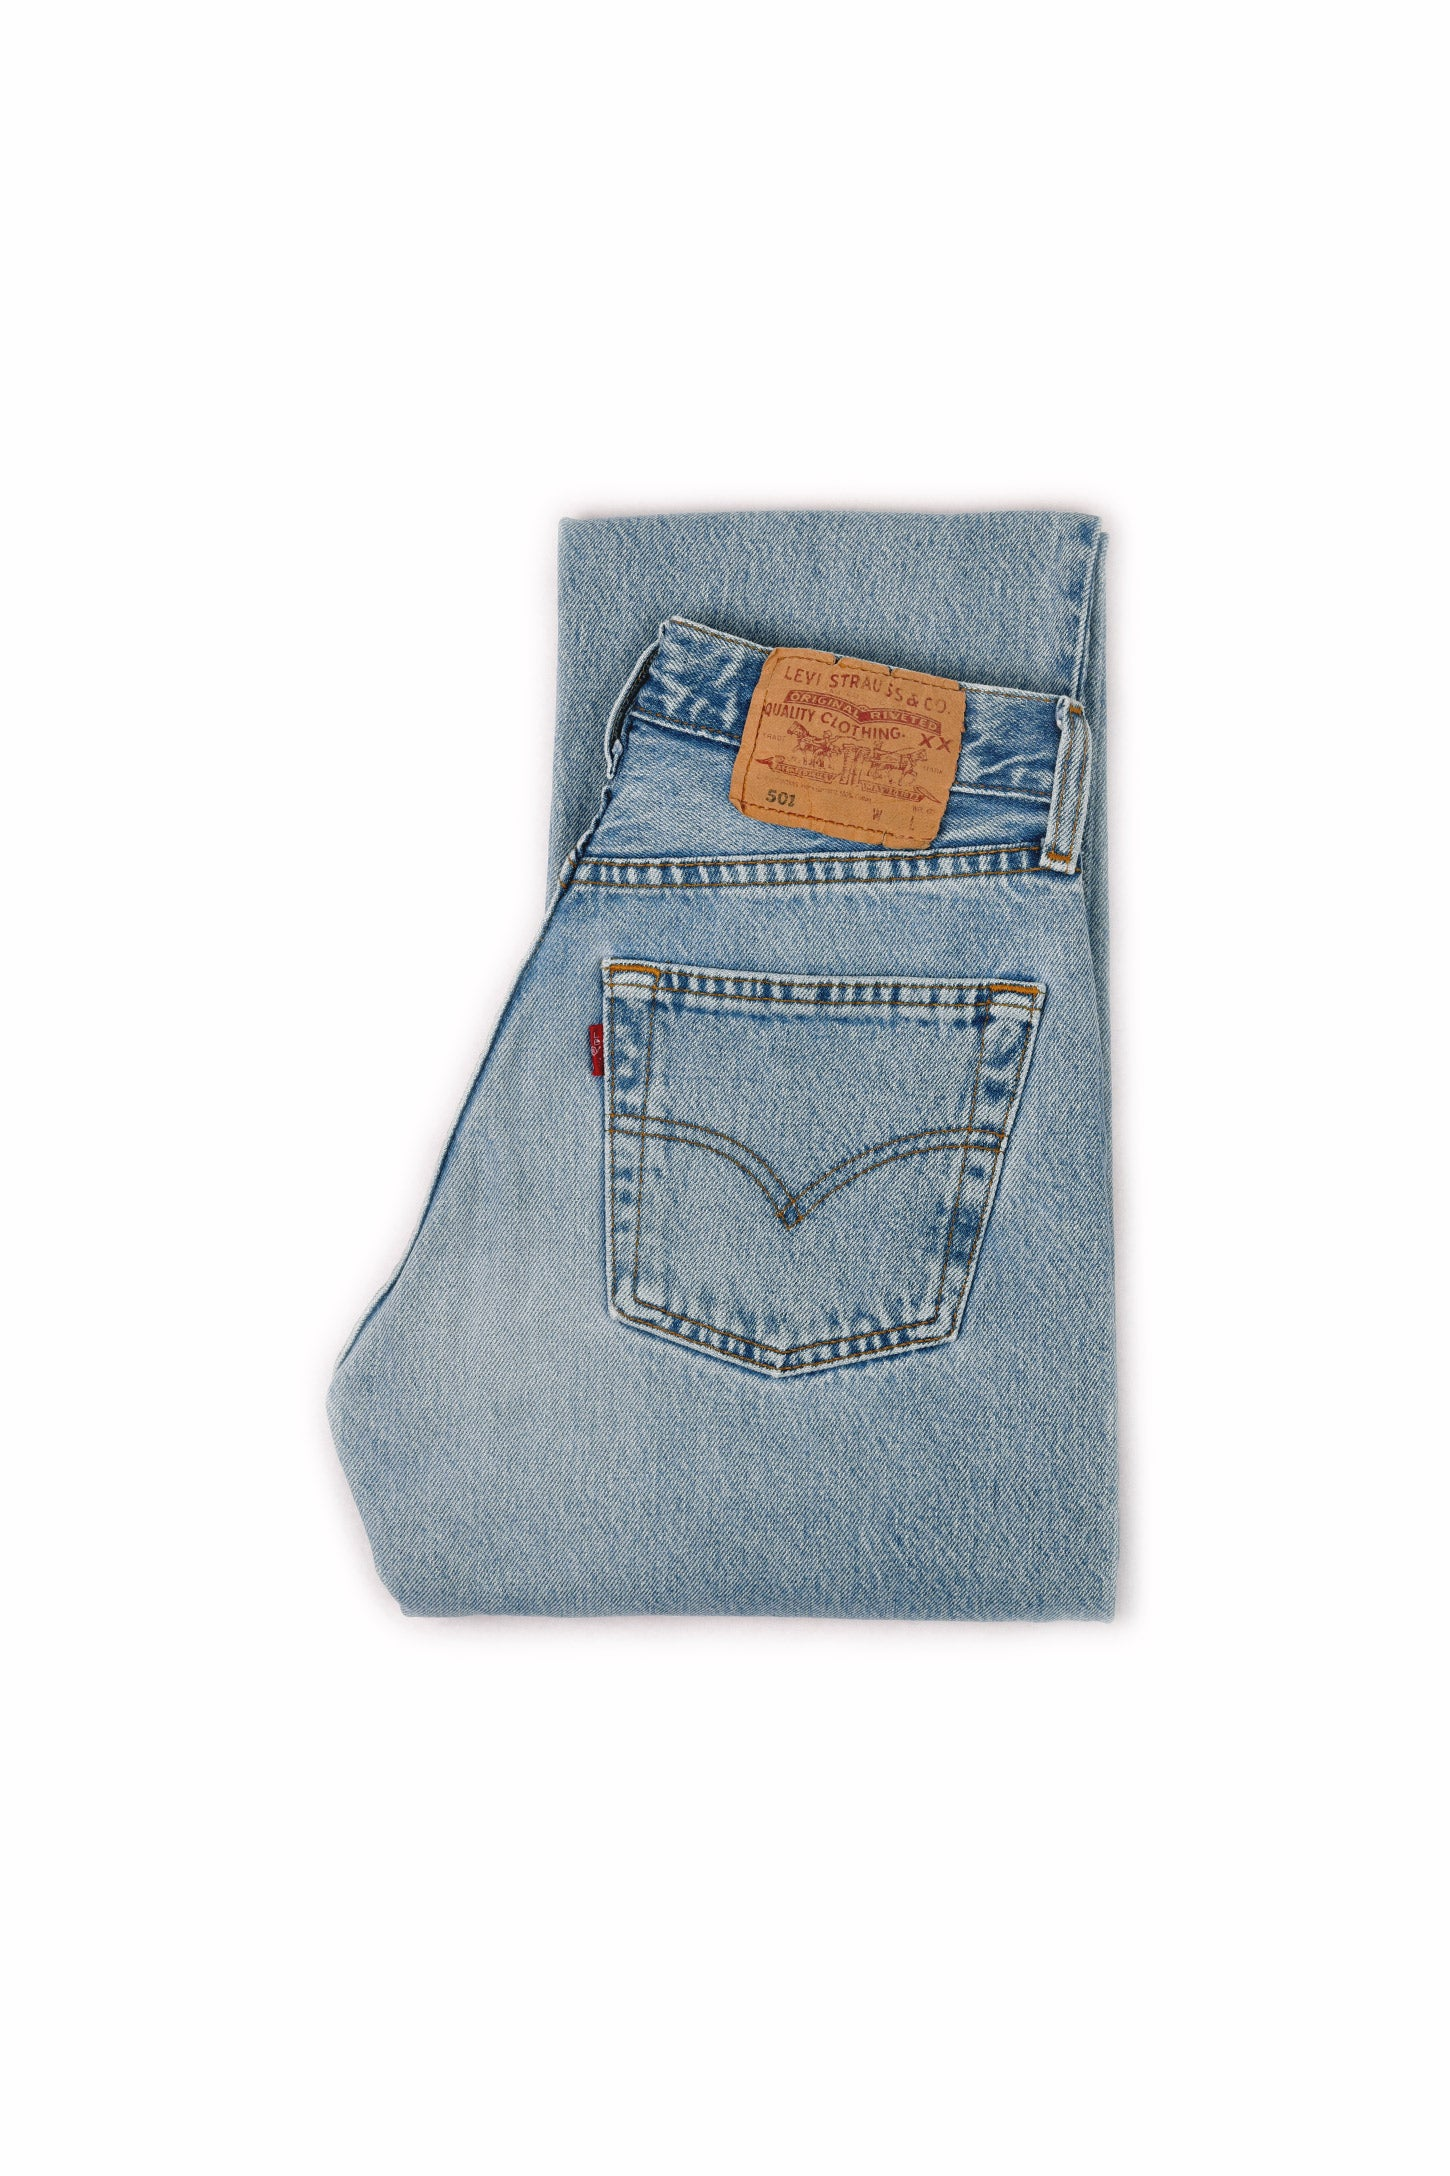 Second Hand - LEVI'S 501 ORIGINAL FIT JEANS BLUE - FRÅN Ö TILL A